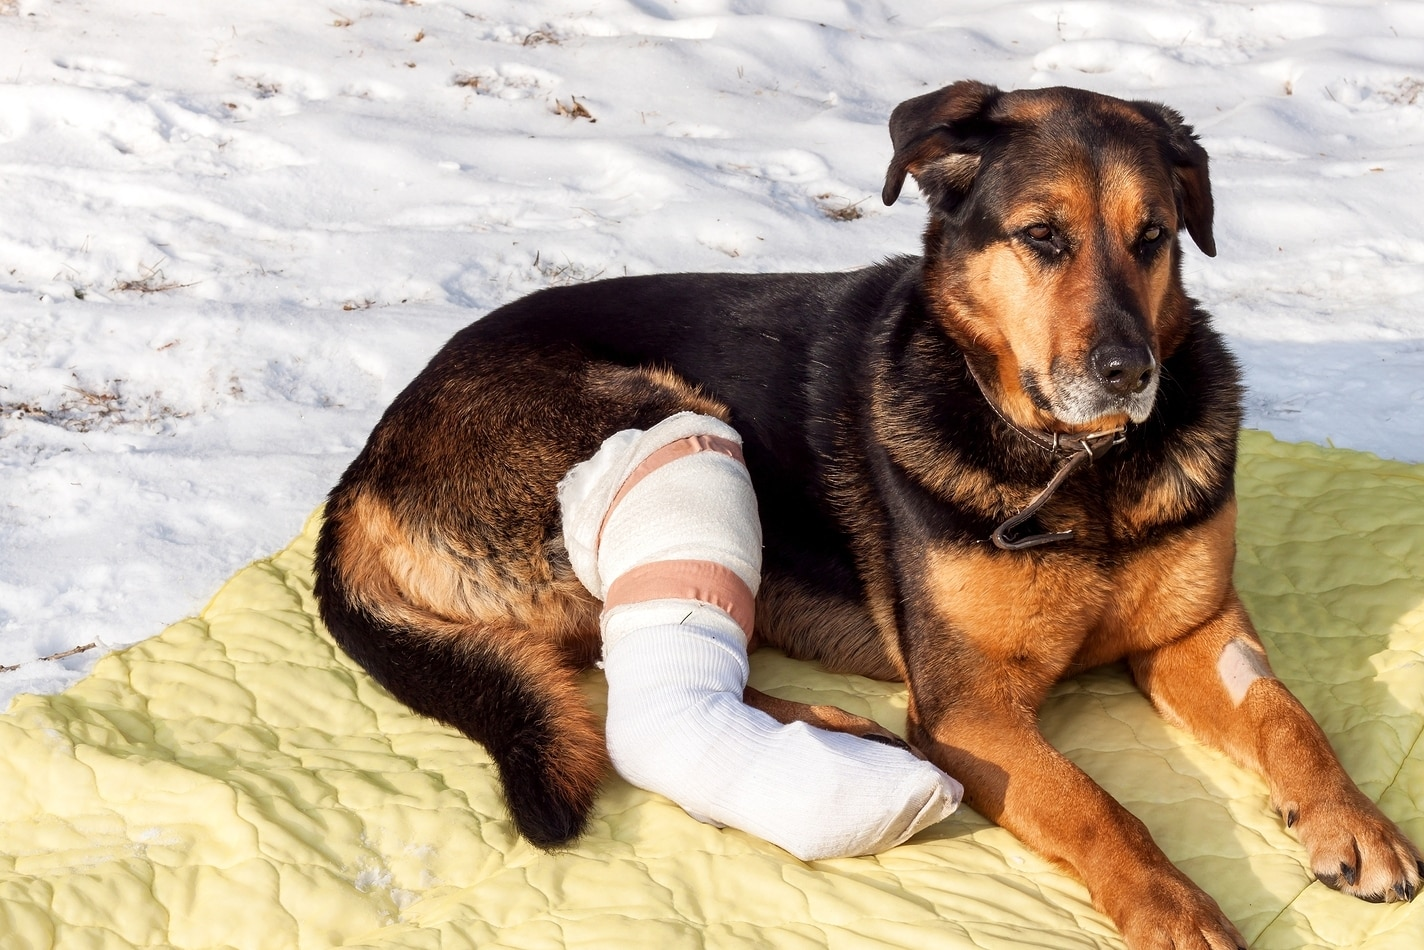 1227dda4c5b7 Dog with broken leg in a cast lies on a yellow blanket in the snow.